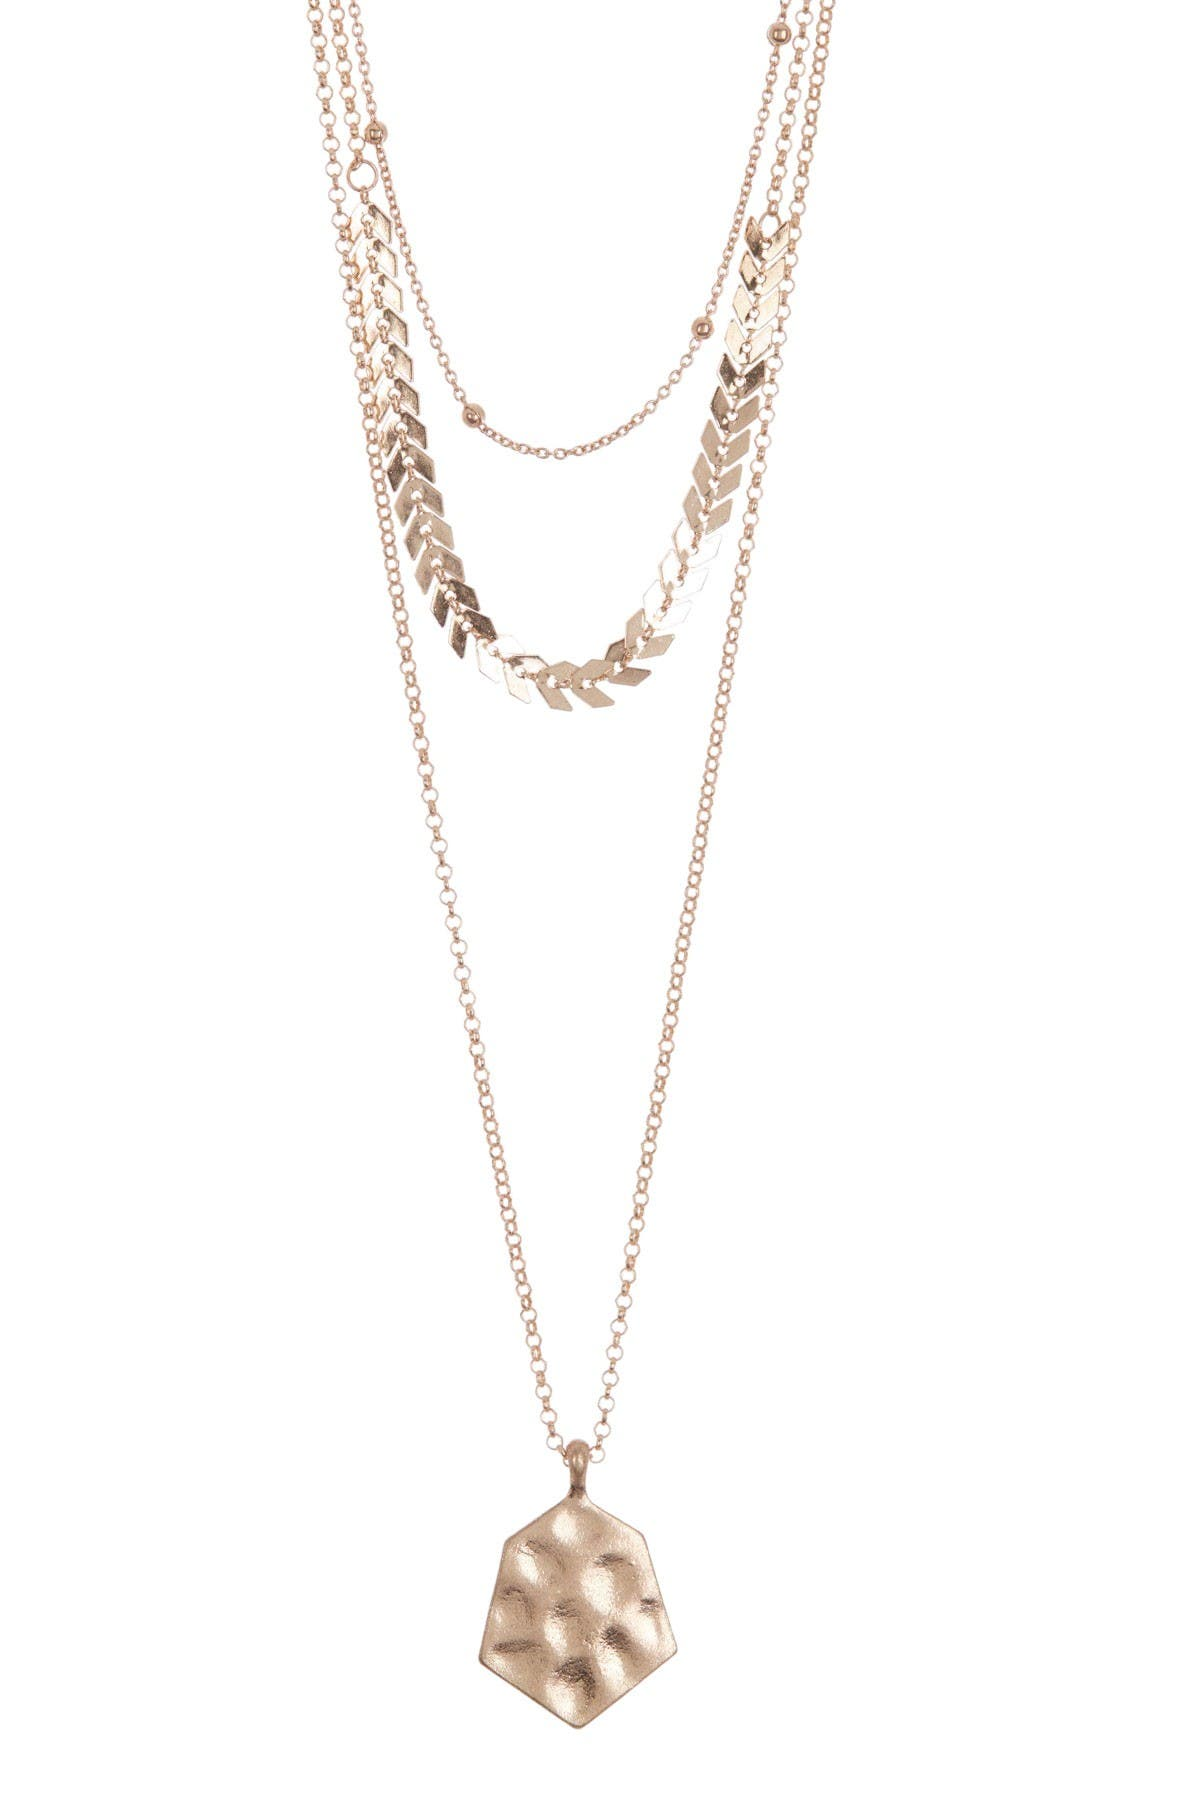 Image of AREA STARS Gold-Tone Link & Hammered Coin Triple Layered Necklace